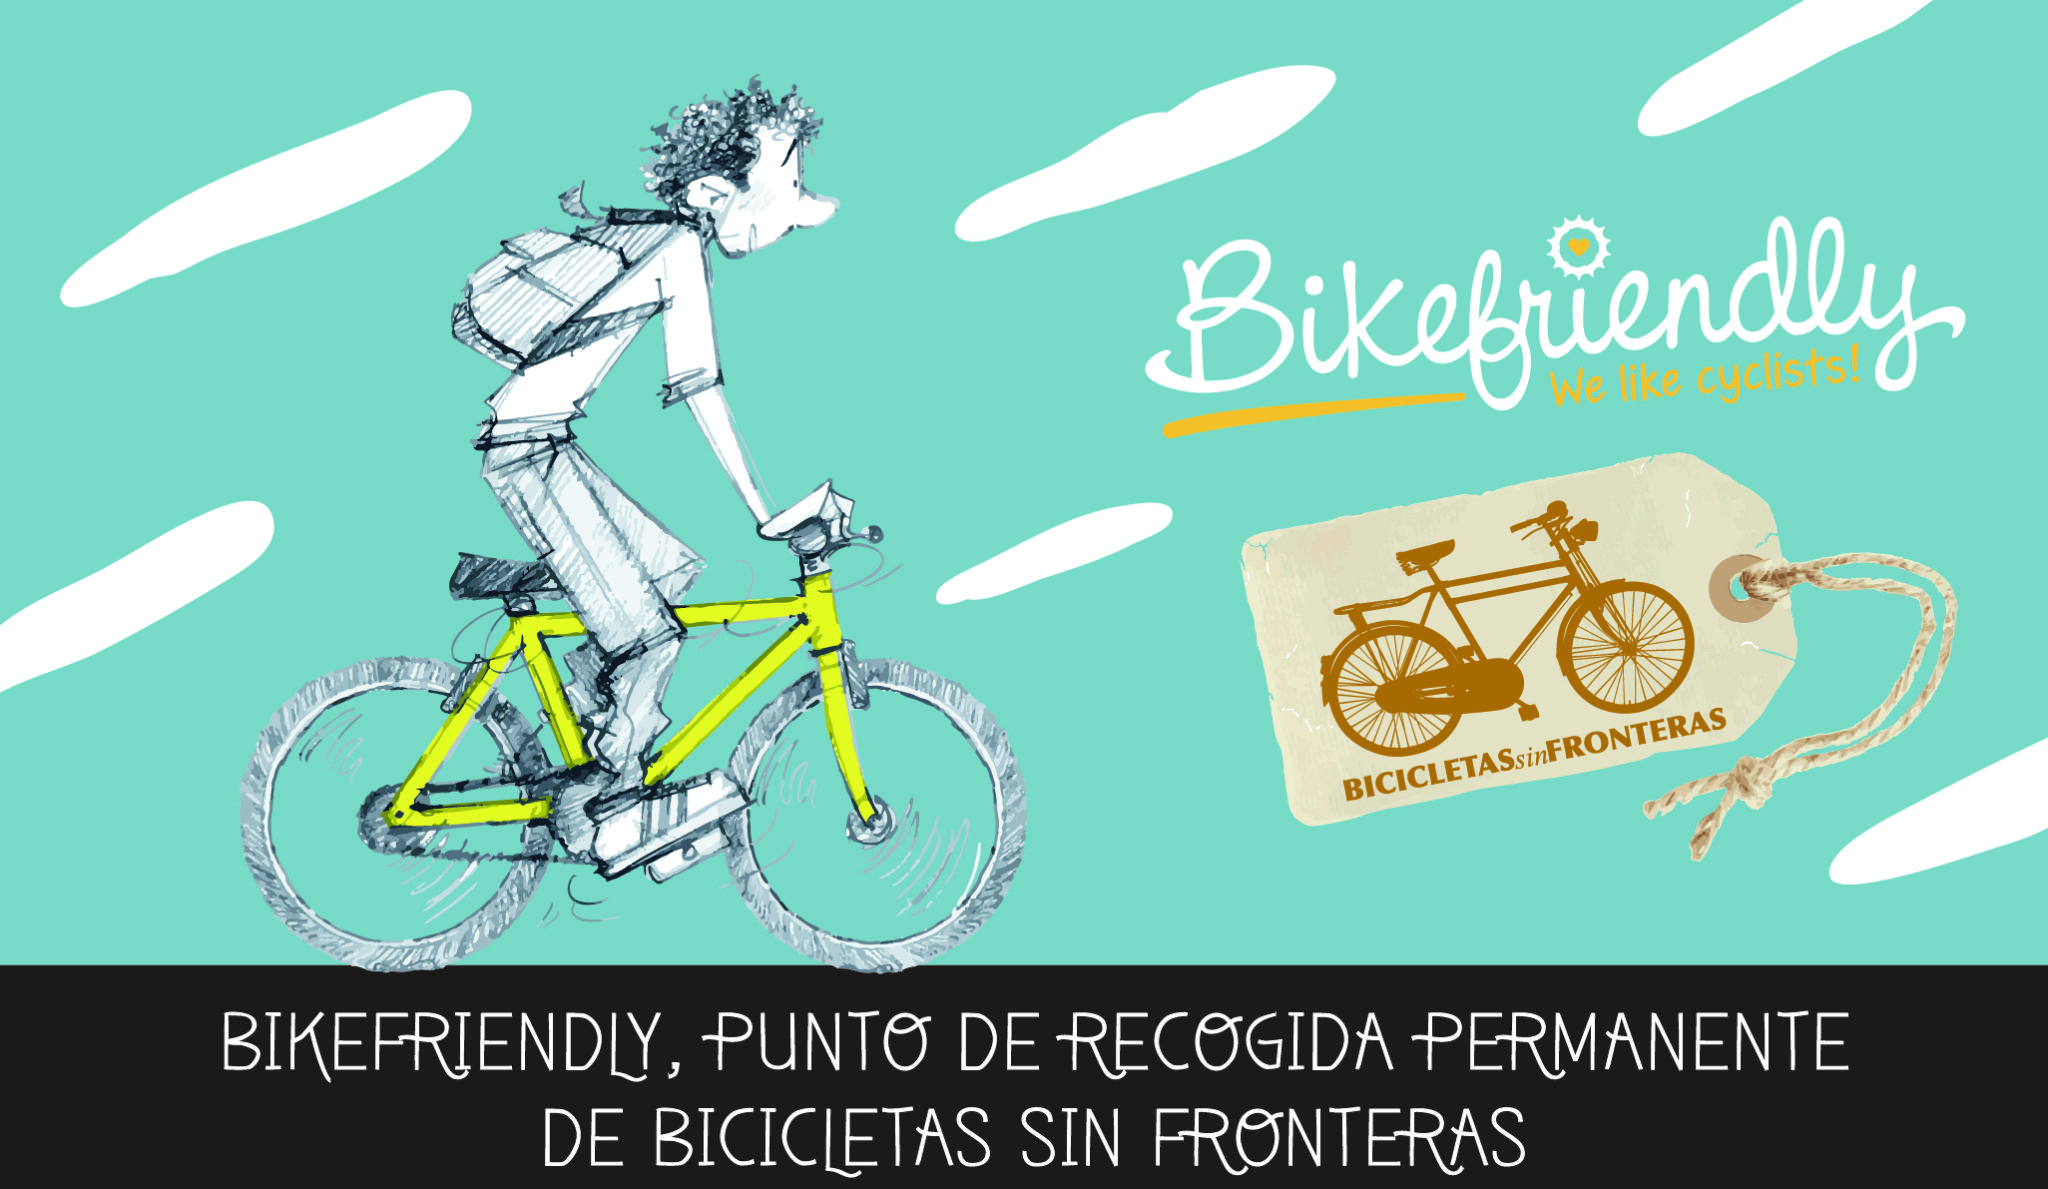 Bicycles without borders- Bikefriendly